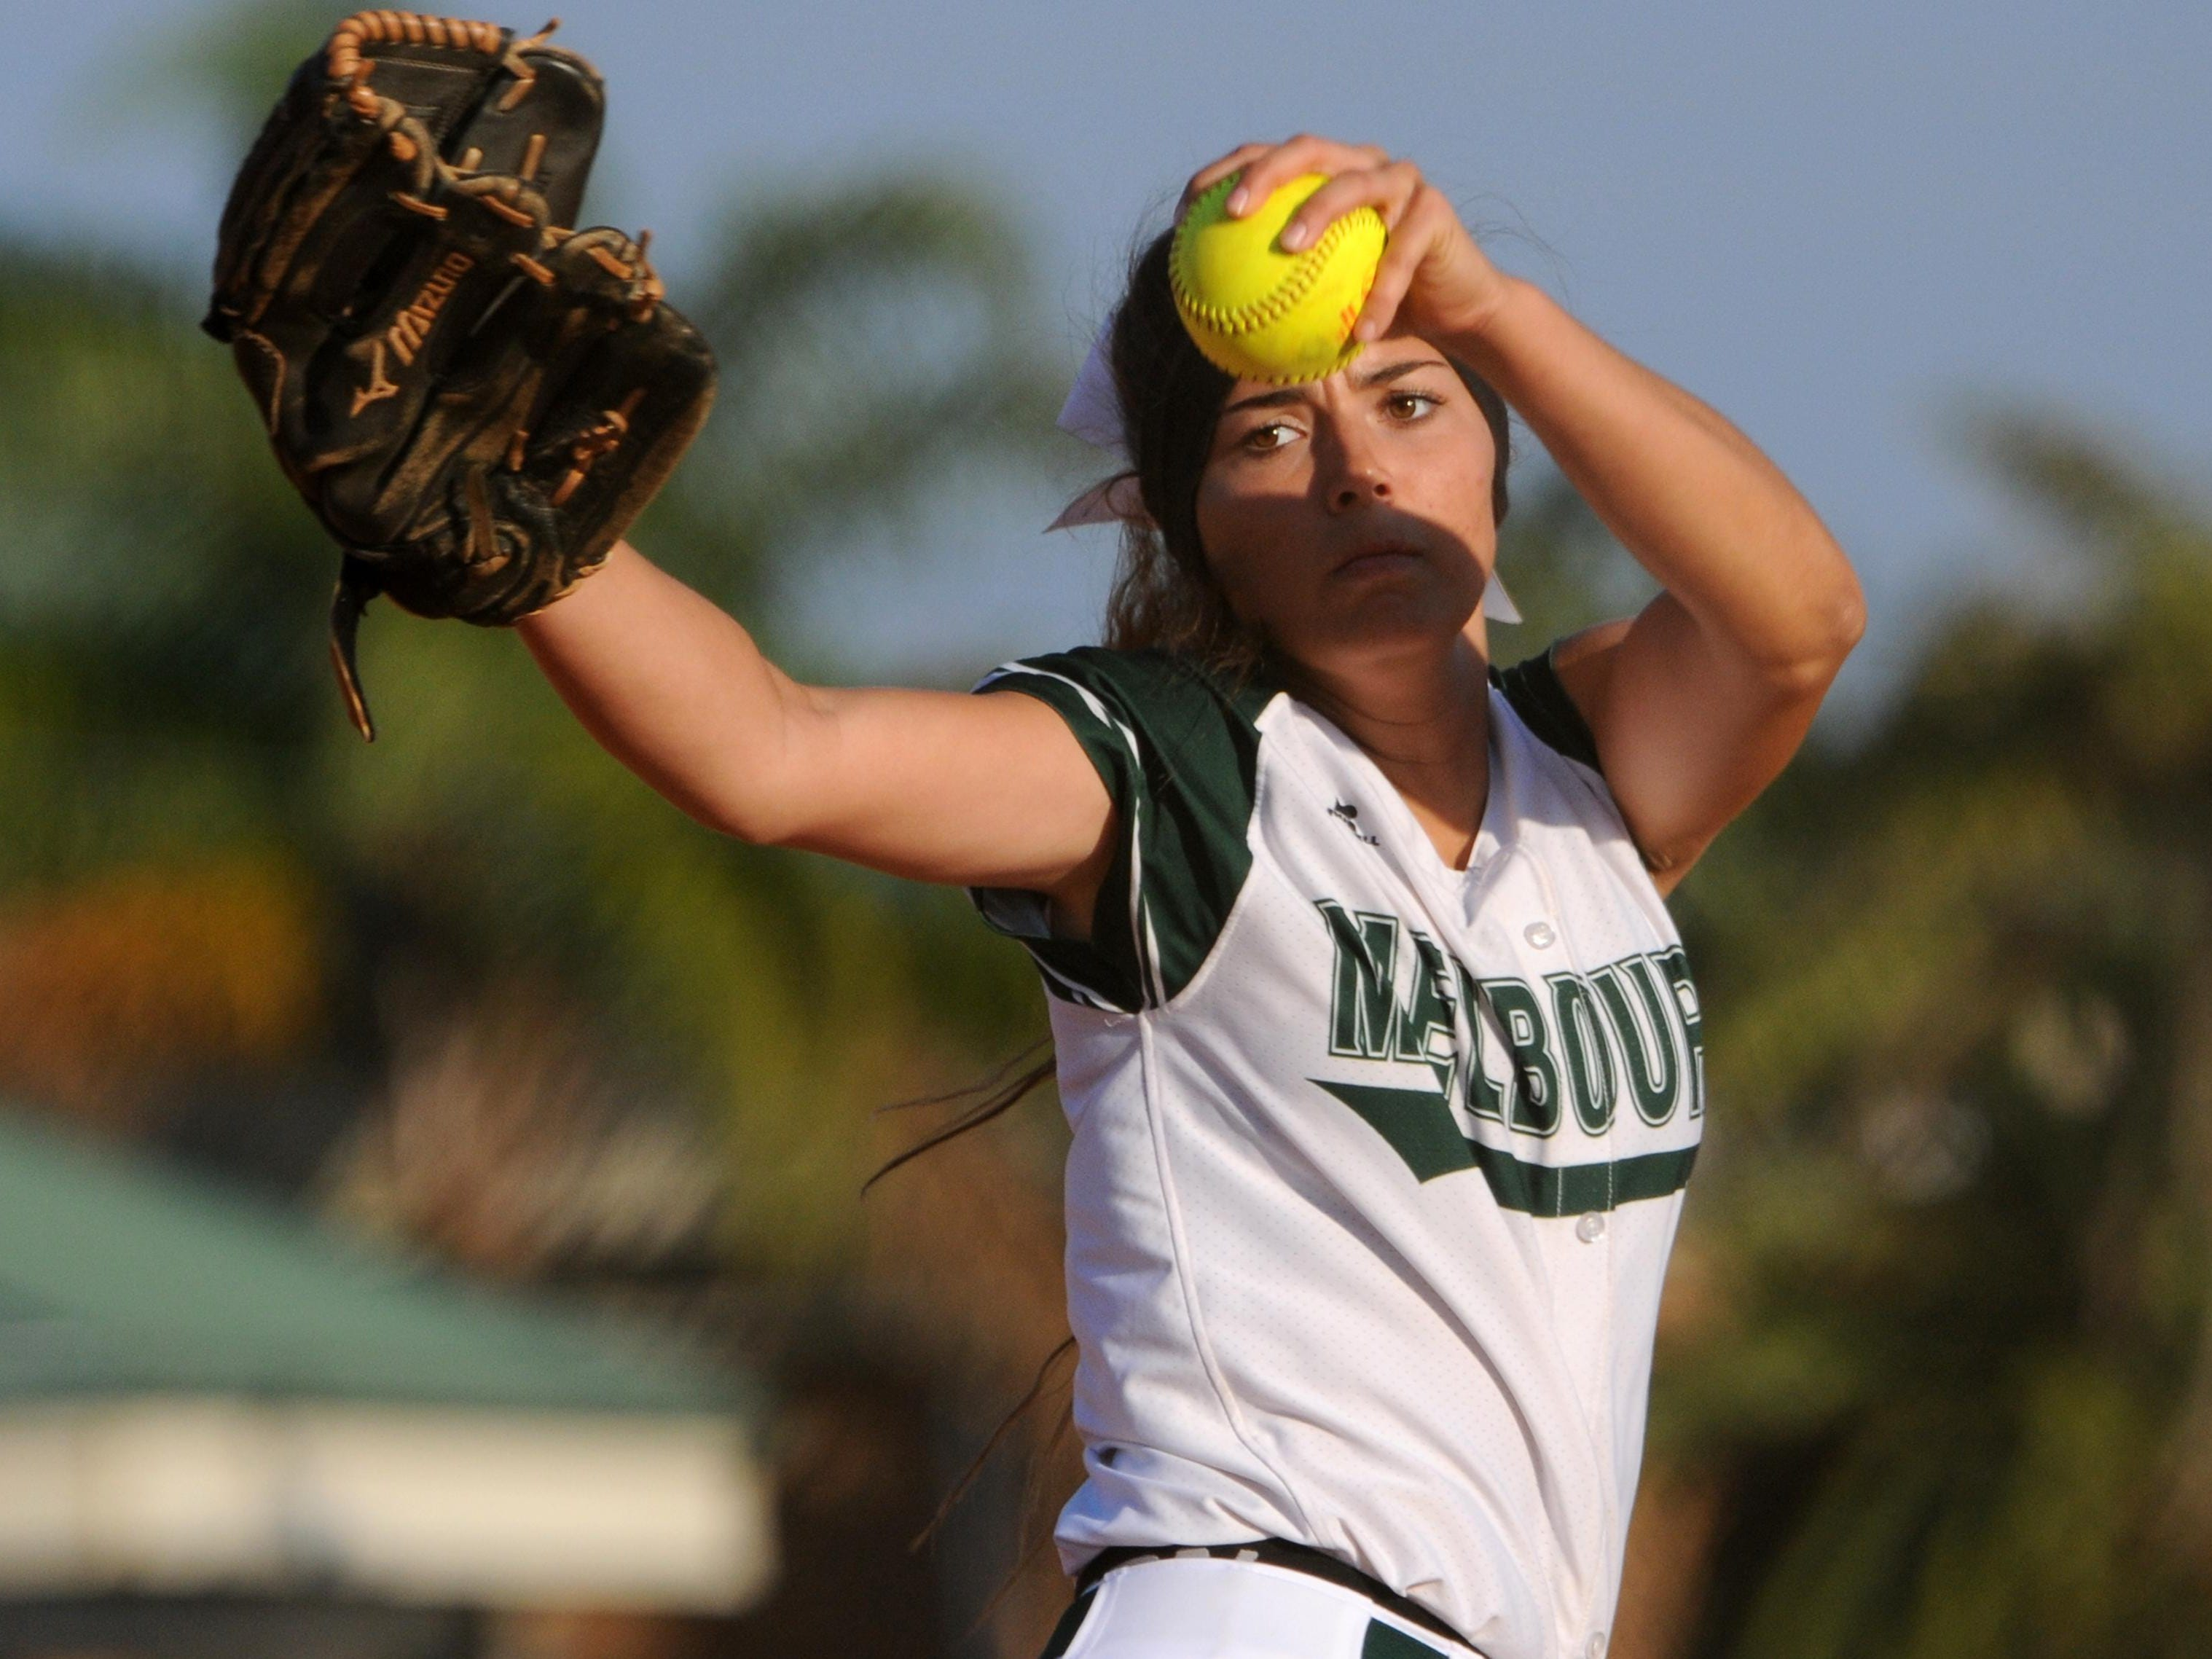 Melbourne's Melanie Murphy pitches during 2015 game against Rockledge.